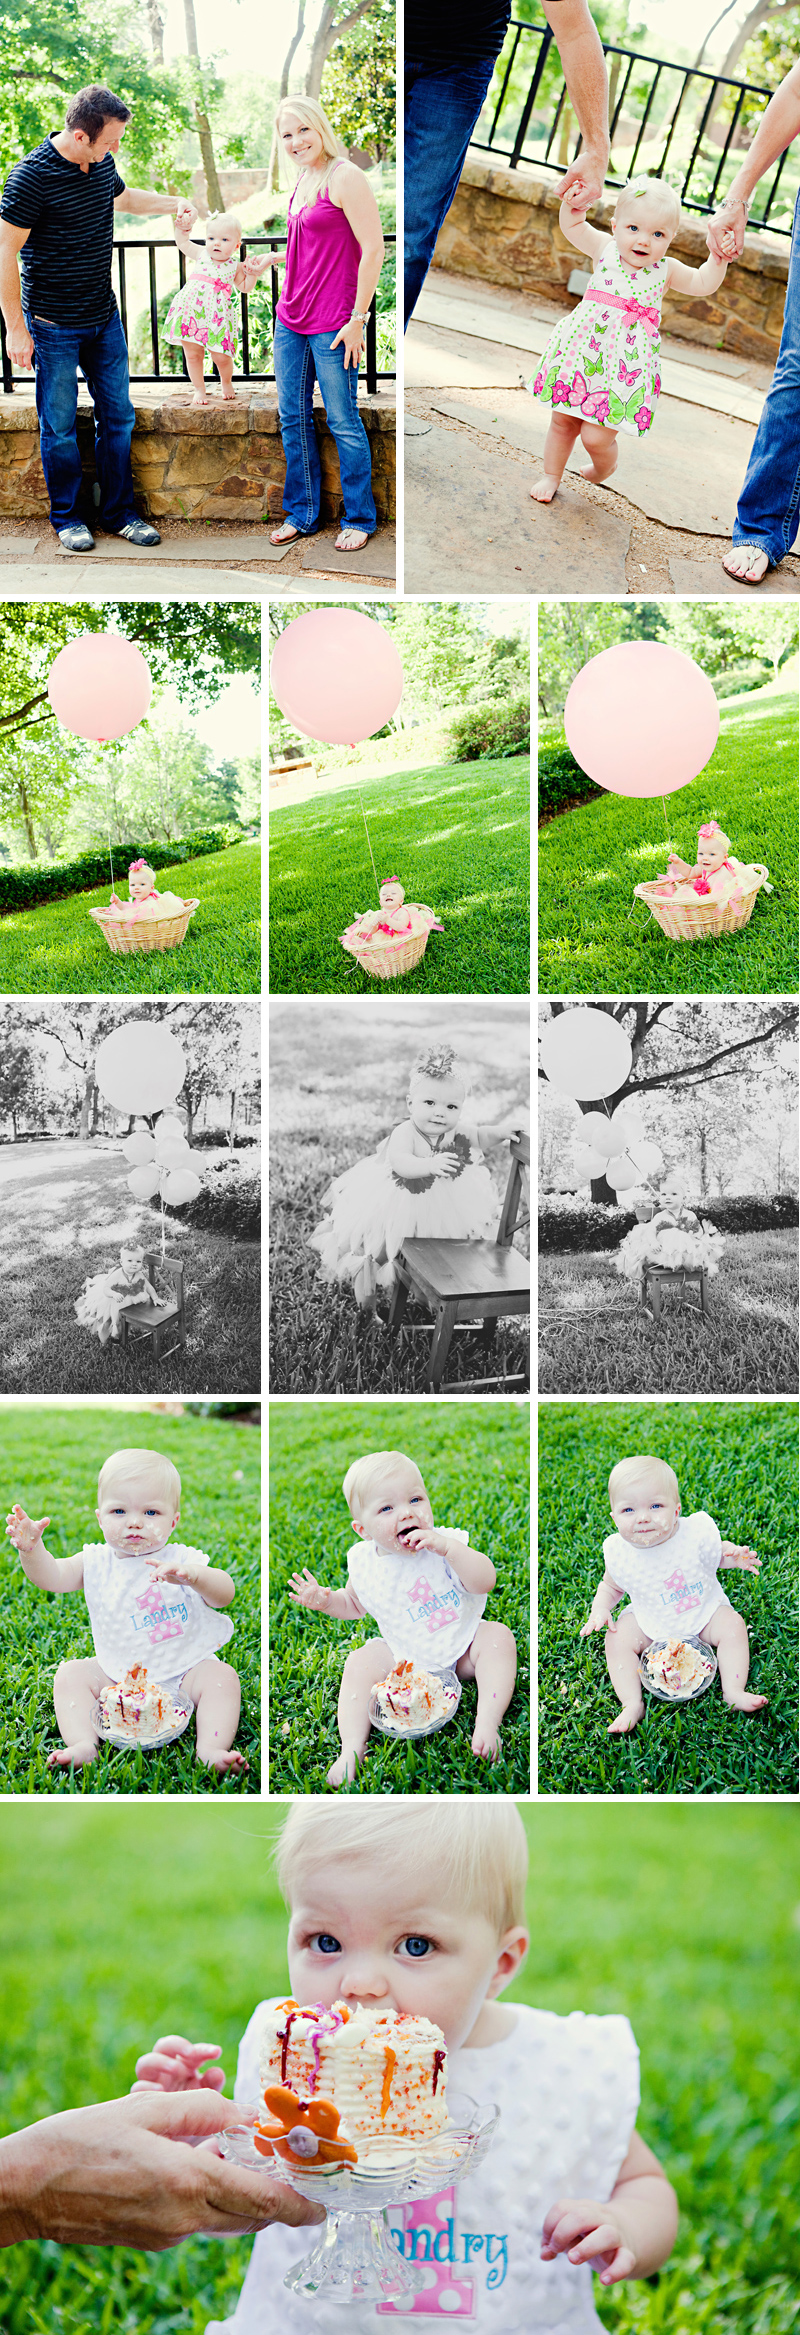 Dallas-Baby-Photographerc009